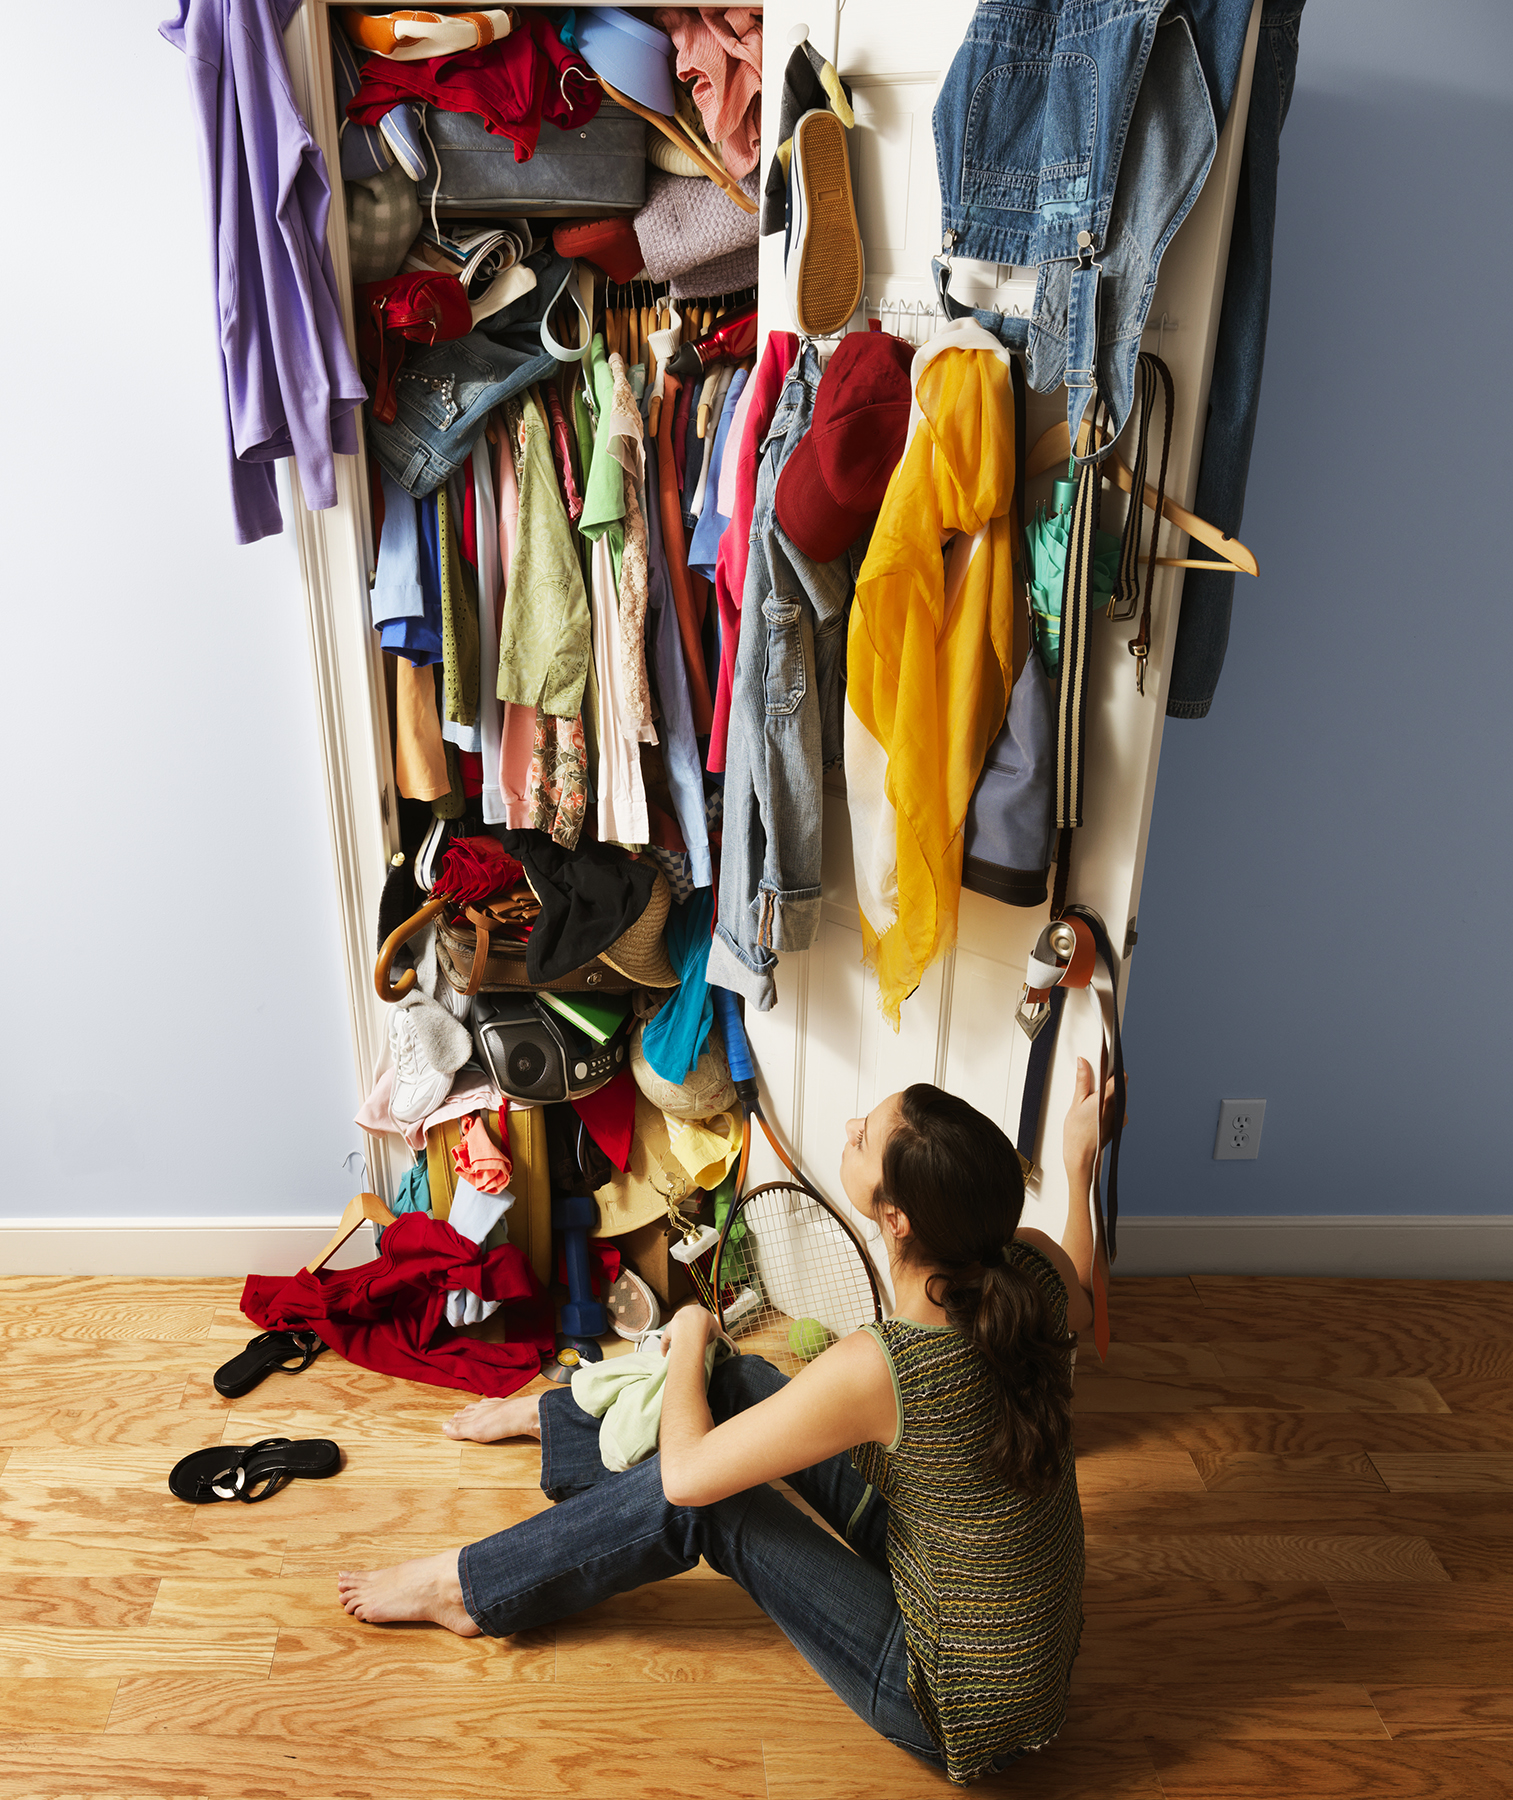 Woman in front of messy closet